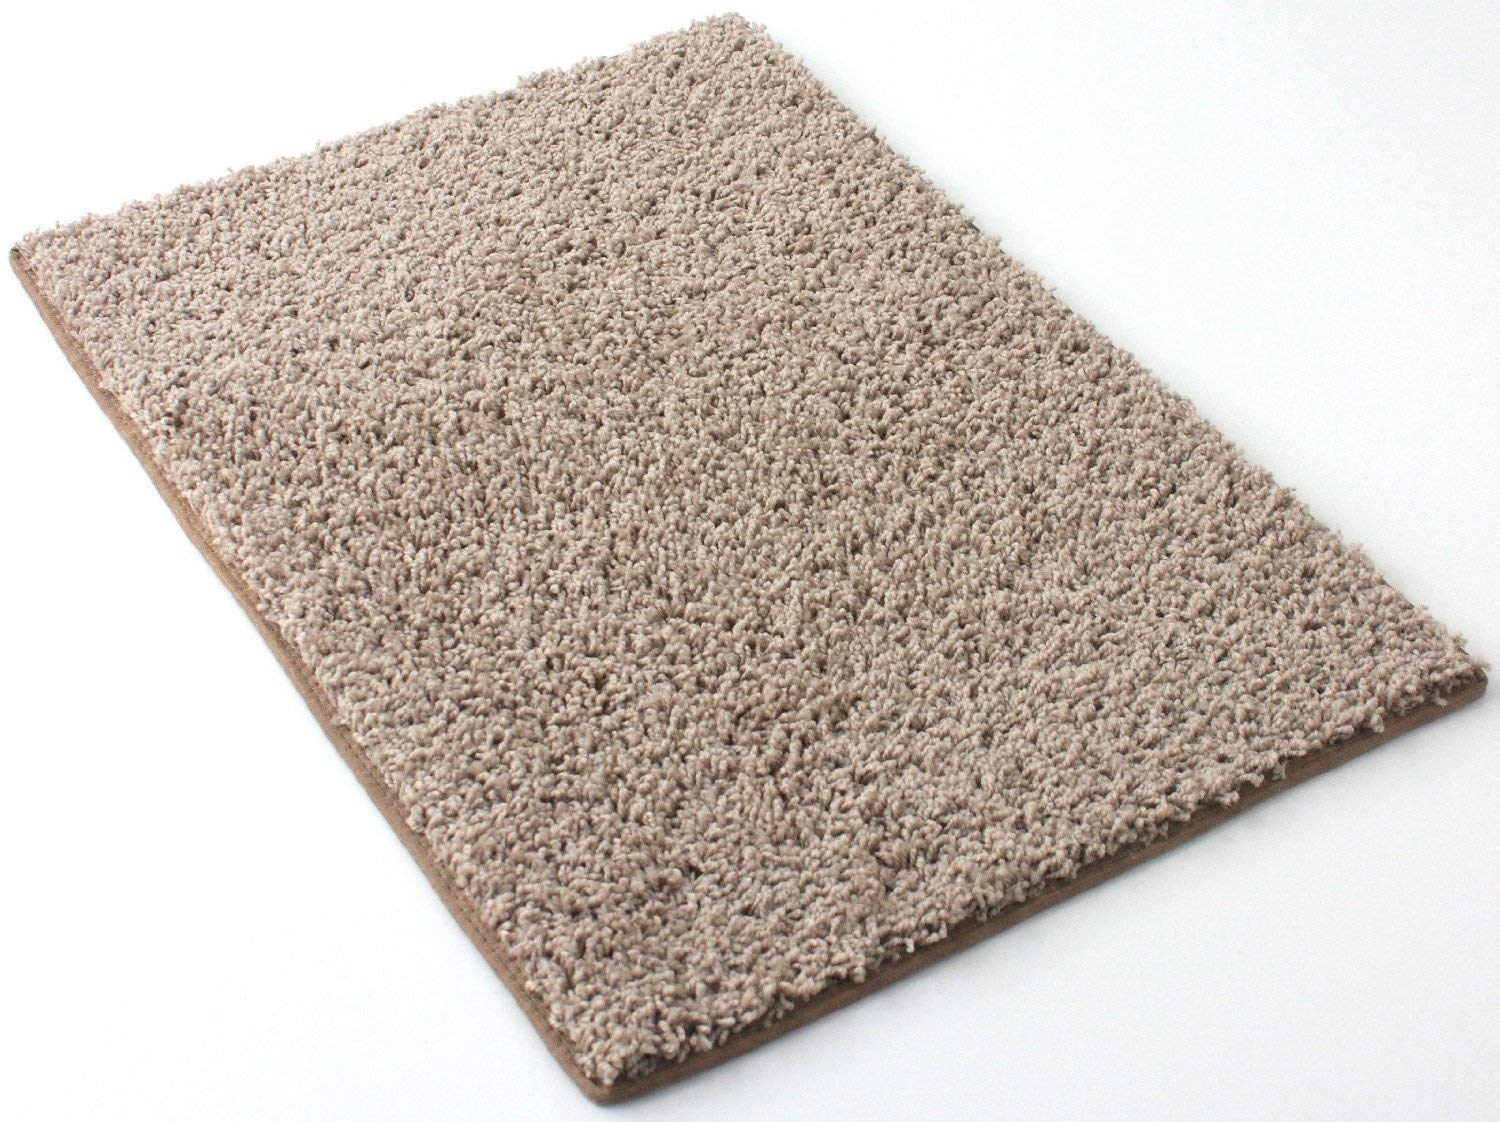 Carpet rug amazon.com: 12x14u0027 taffy apple area rug carpet. hem-stitching on all four  sides. KZQPSQU